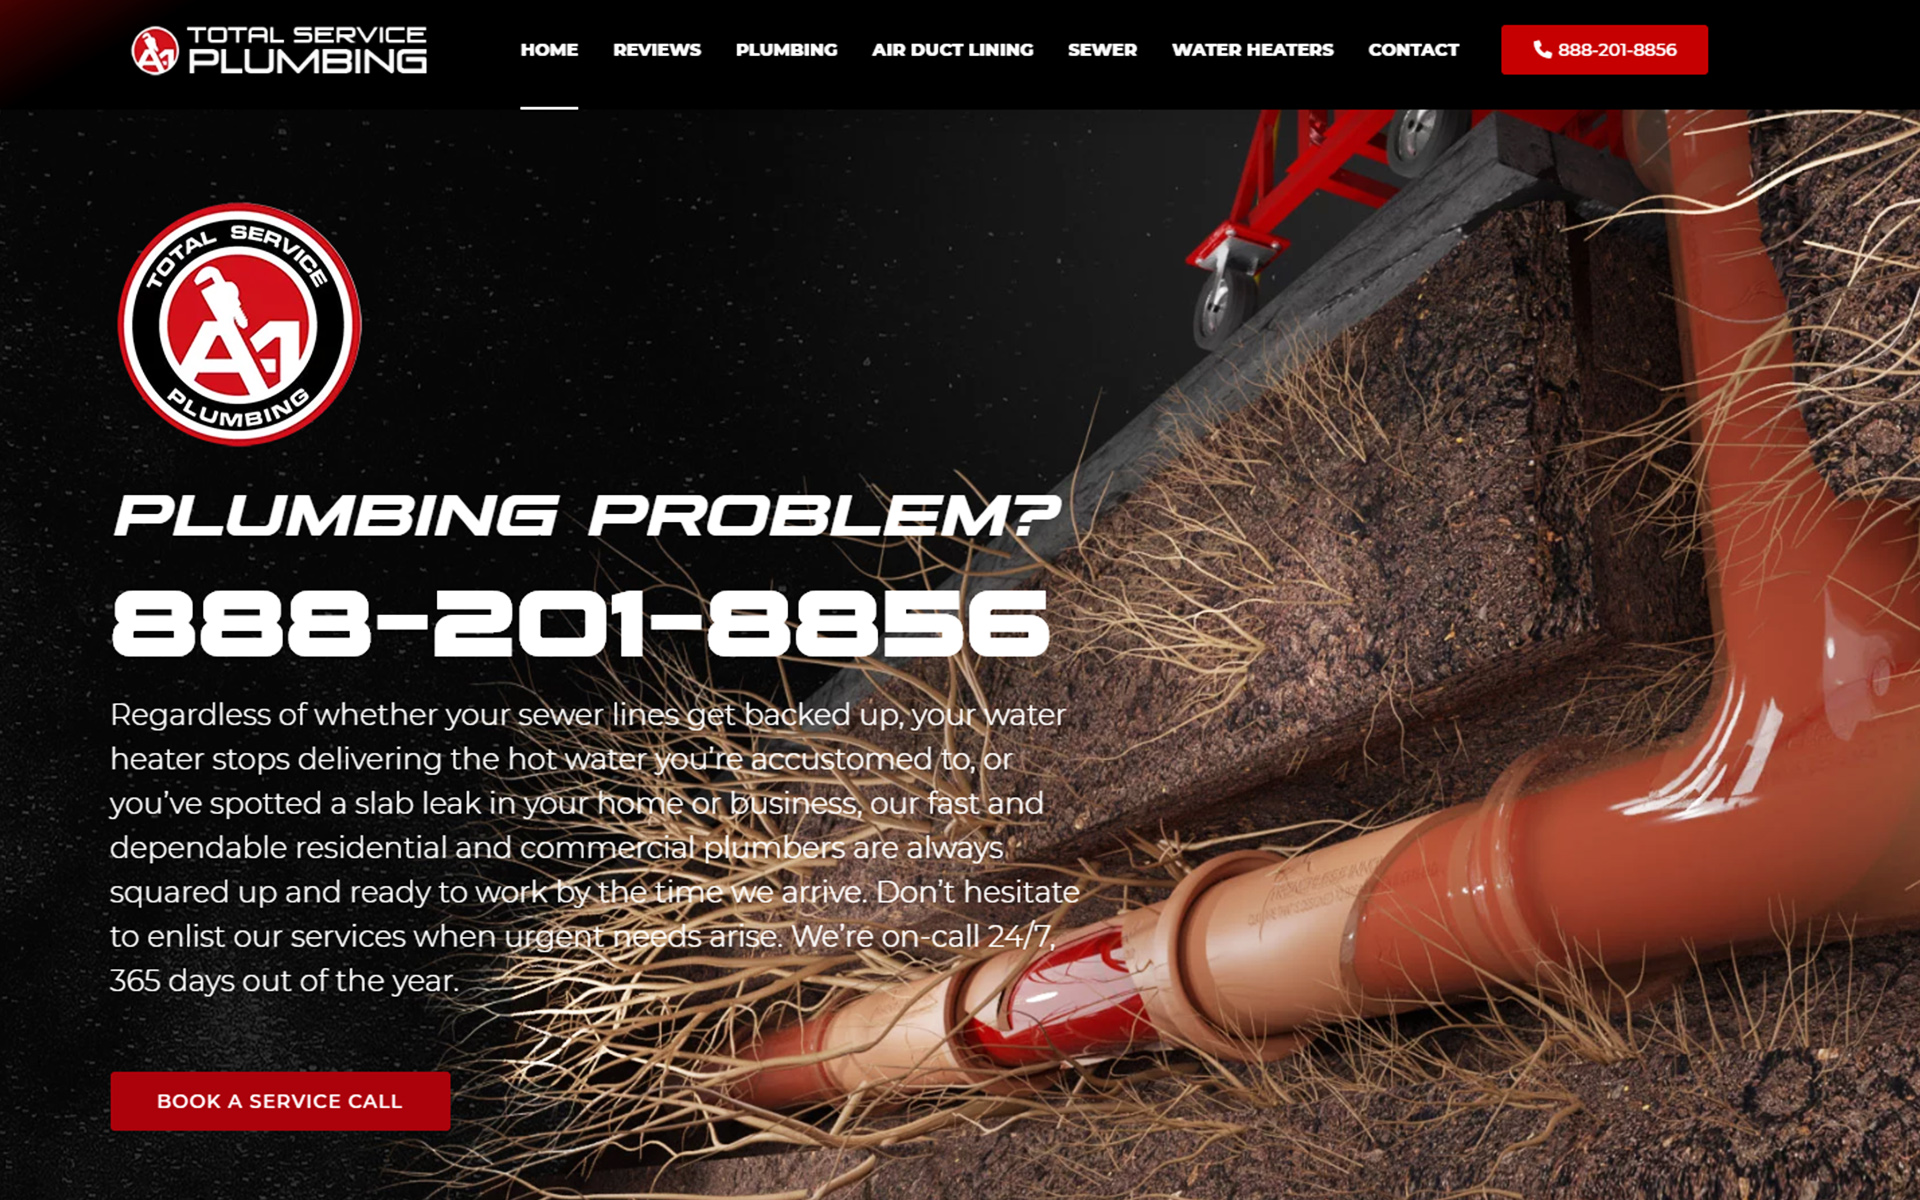 a1-trenchless-website-marketing